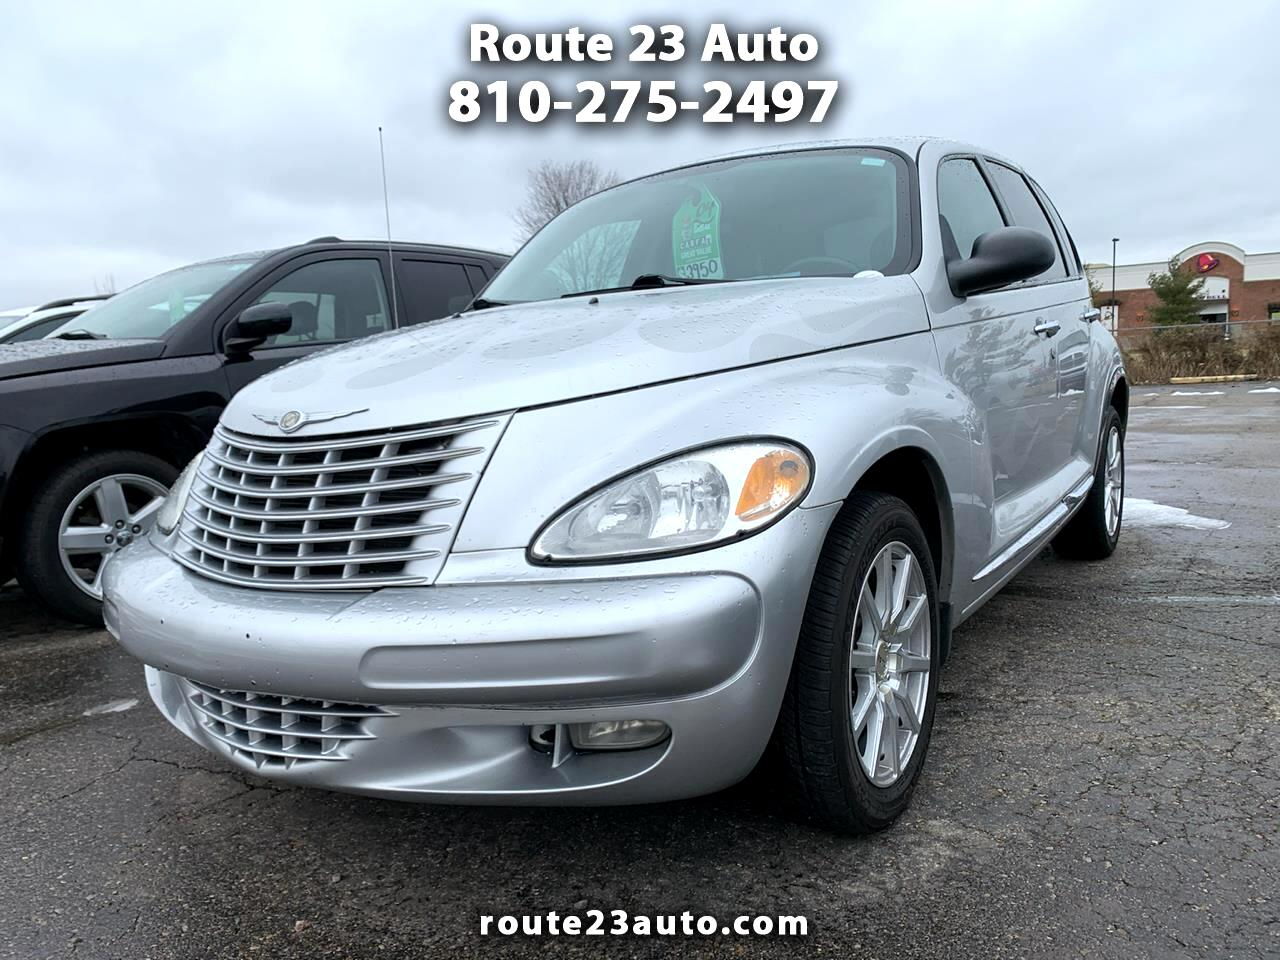 Chrysler PT Cruiser Limited Edition 2004